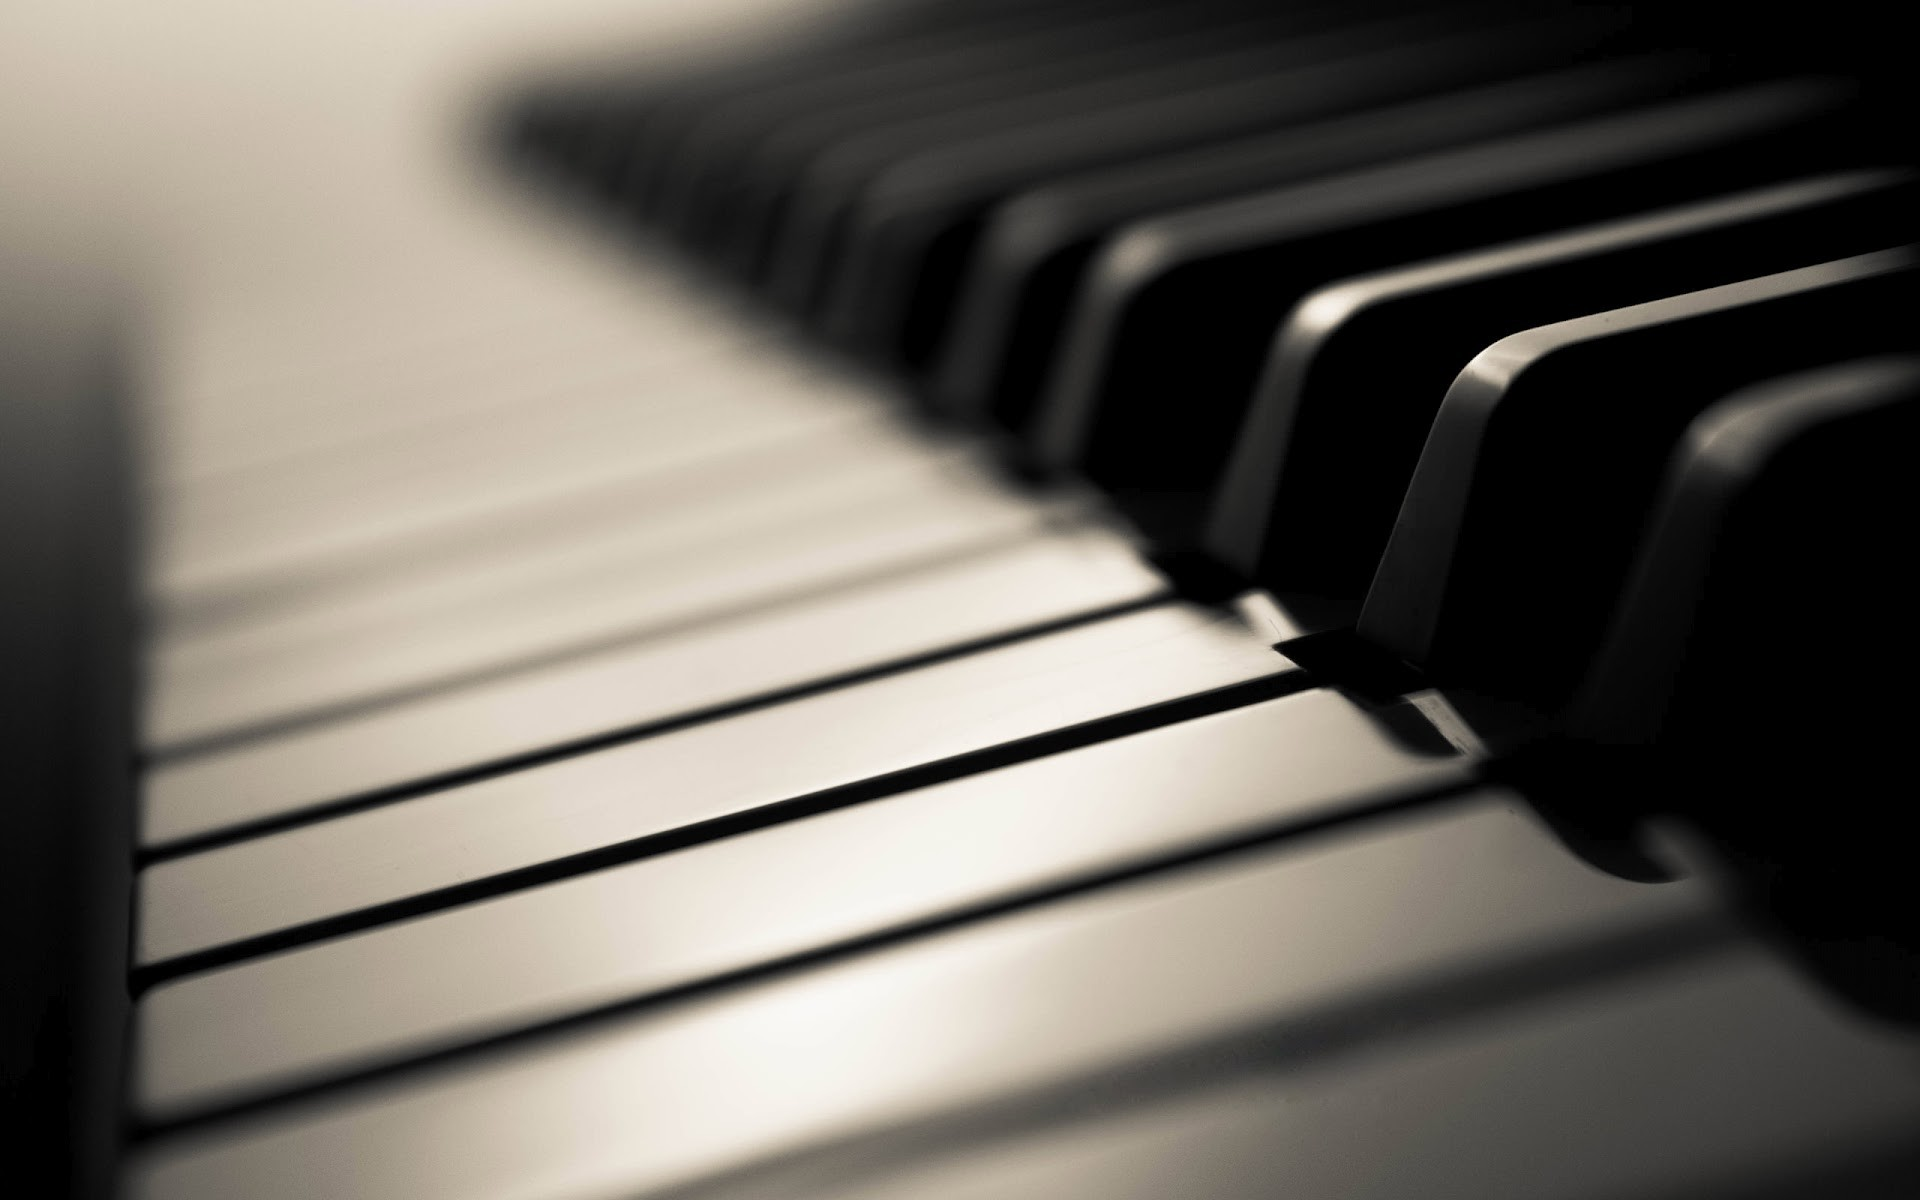 1920x1200 Piano HD Wallpaper | Background Image |  | ID:294651 - Wallpaper  Abyss